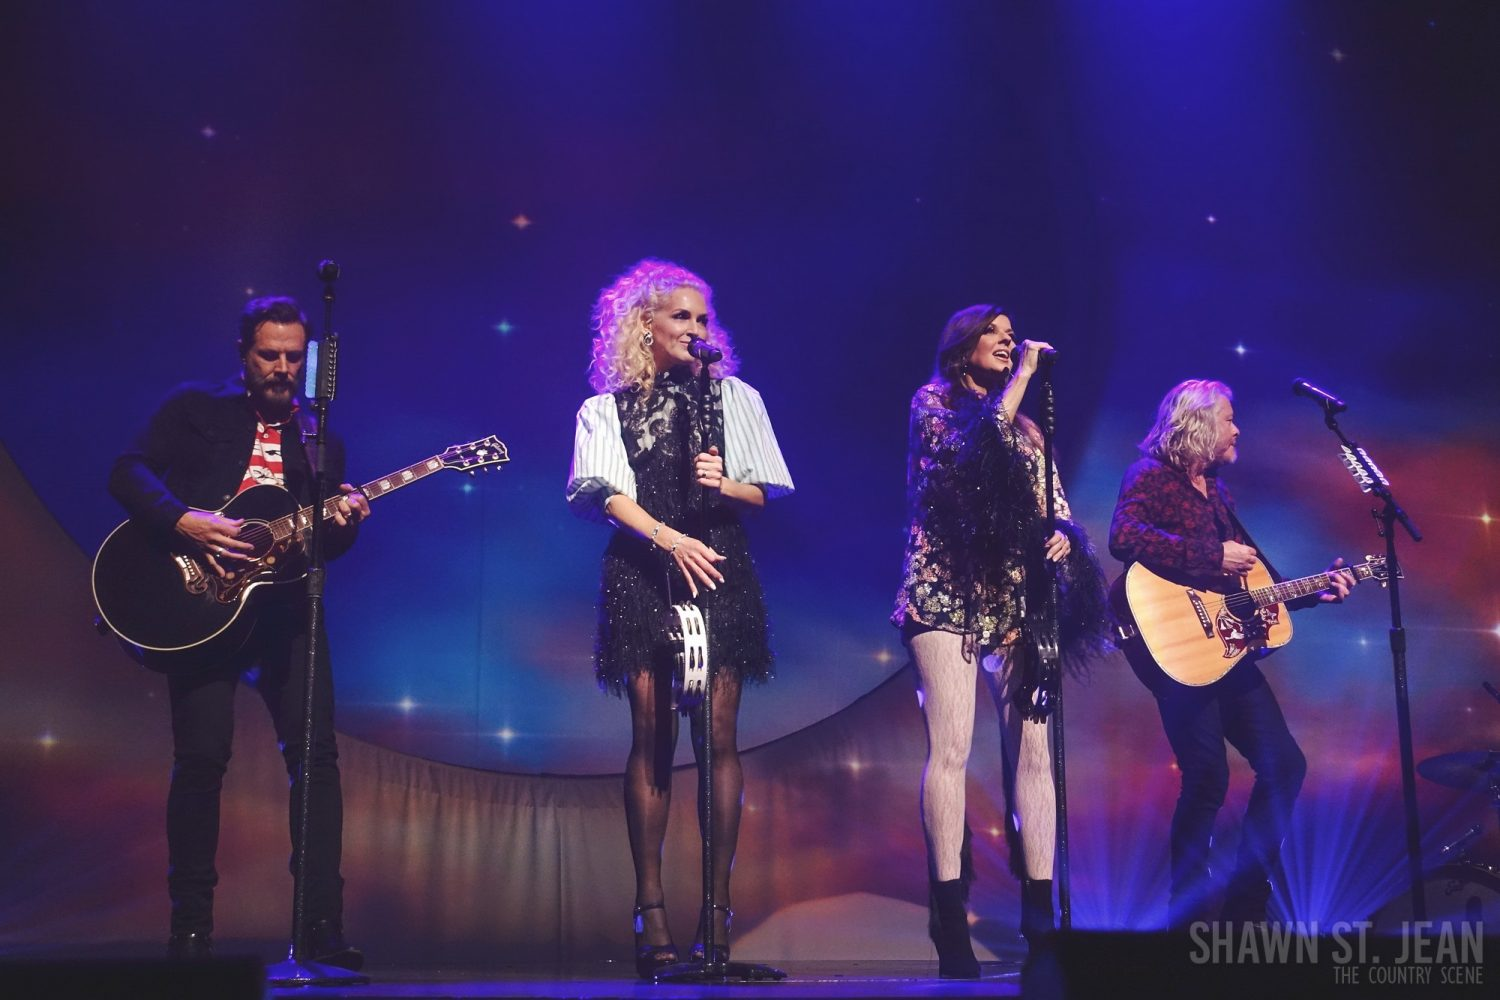 Little Big Town at The Apollo Theater on the Nightfall Tour, Jan 18, 2020 / Photo by Shawn St. Jean